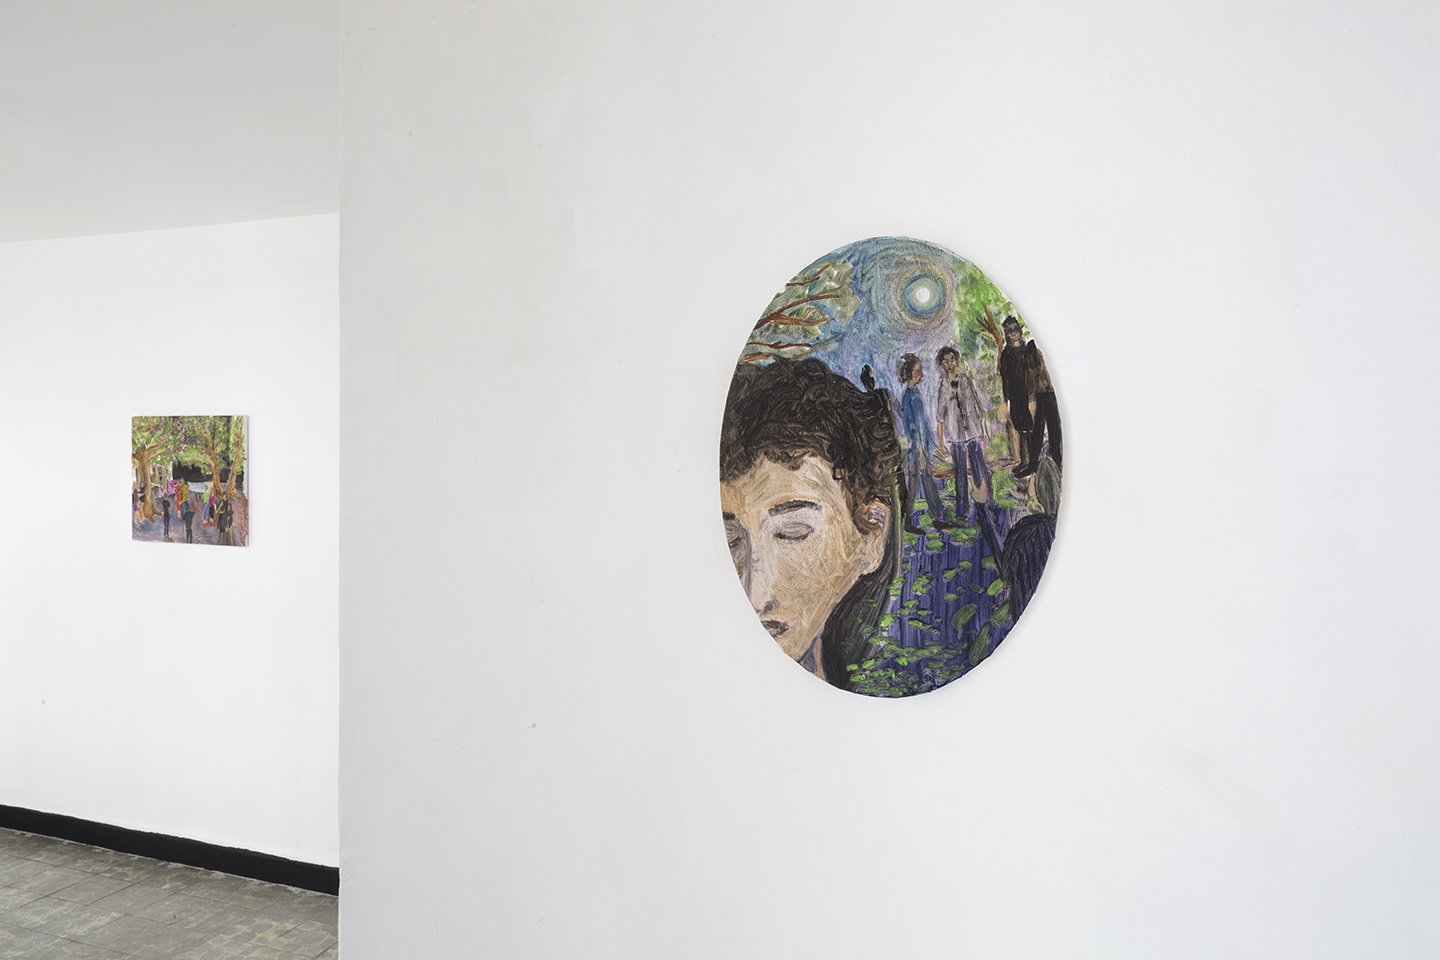 """Lea von Wintzingerode """"The Contract"""" at Lulu annex, Mexico"""